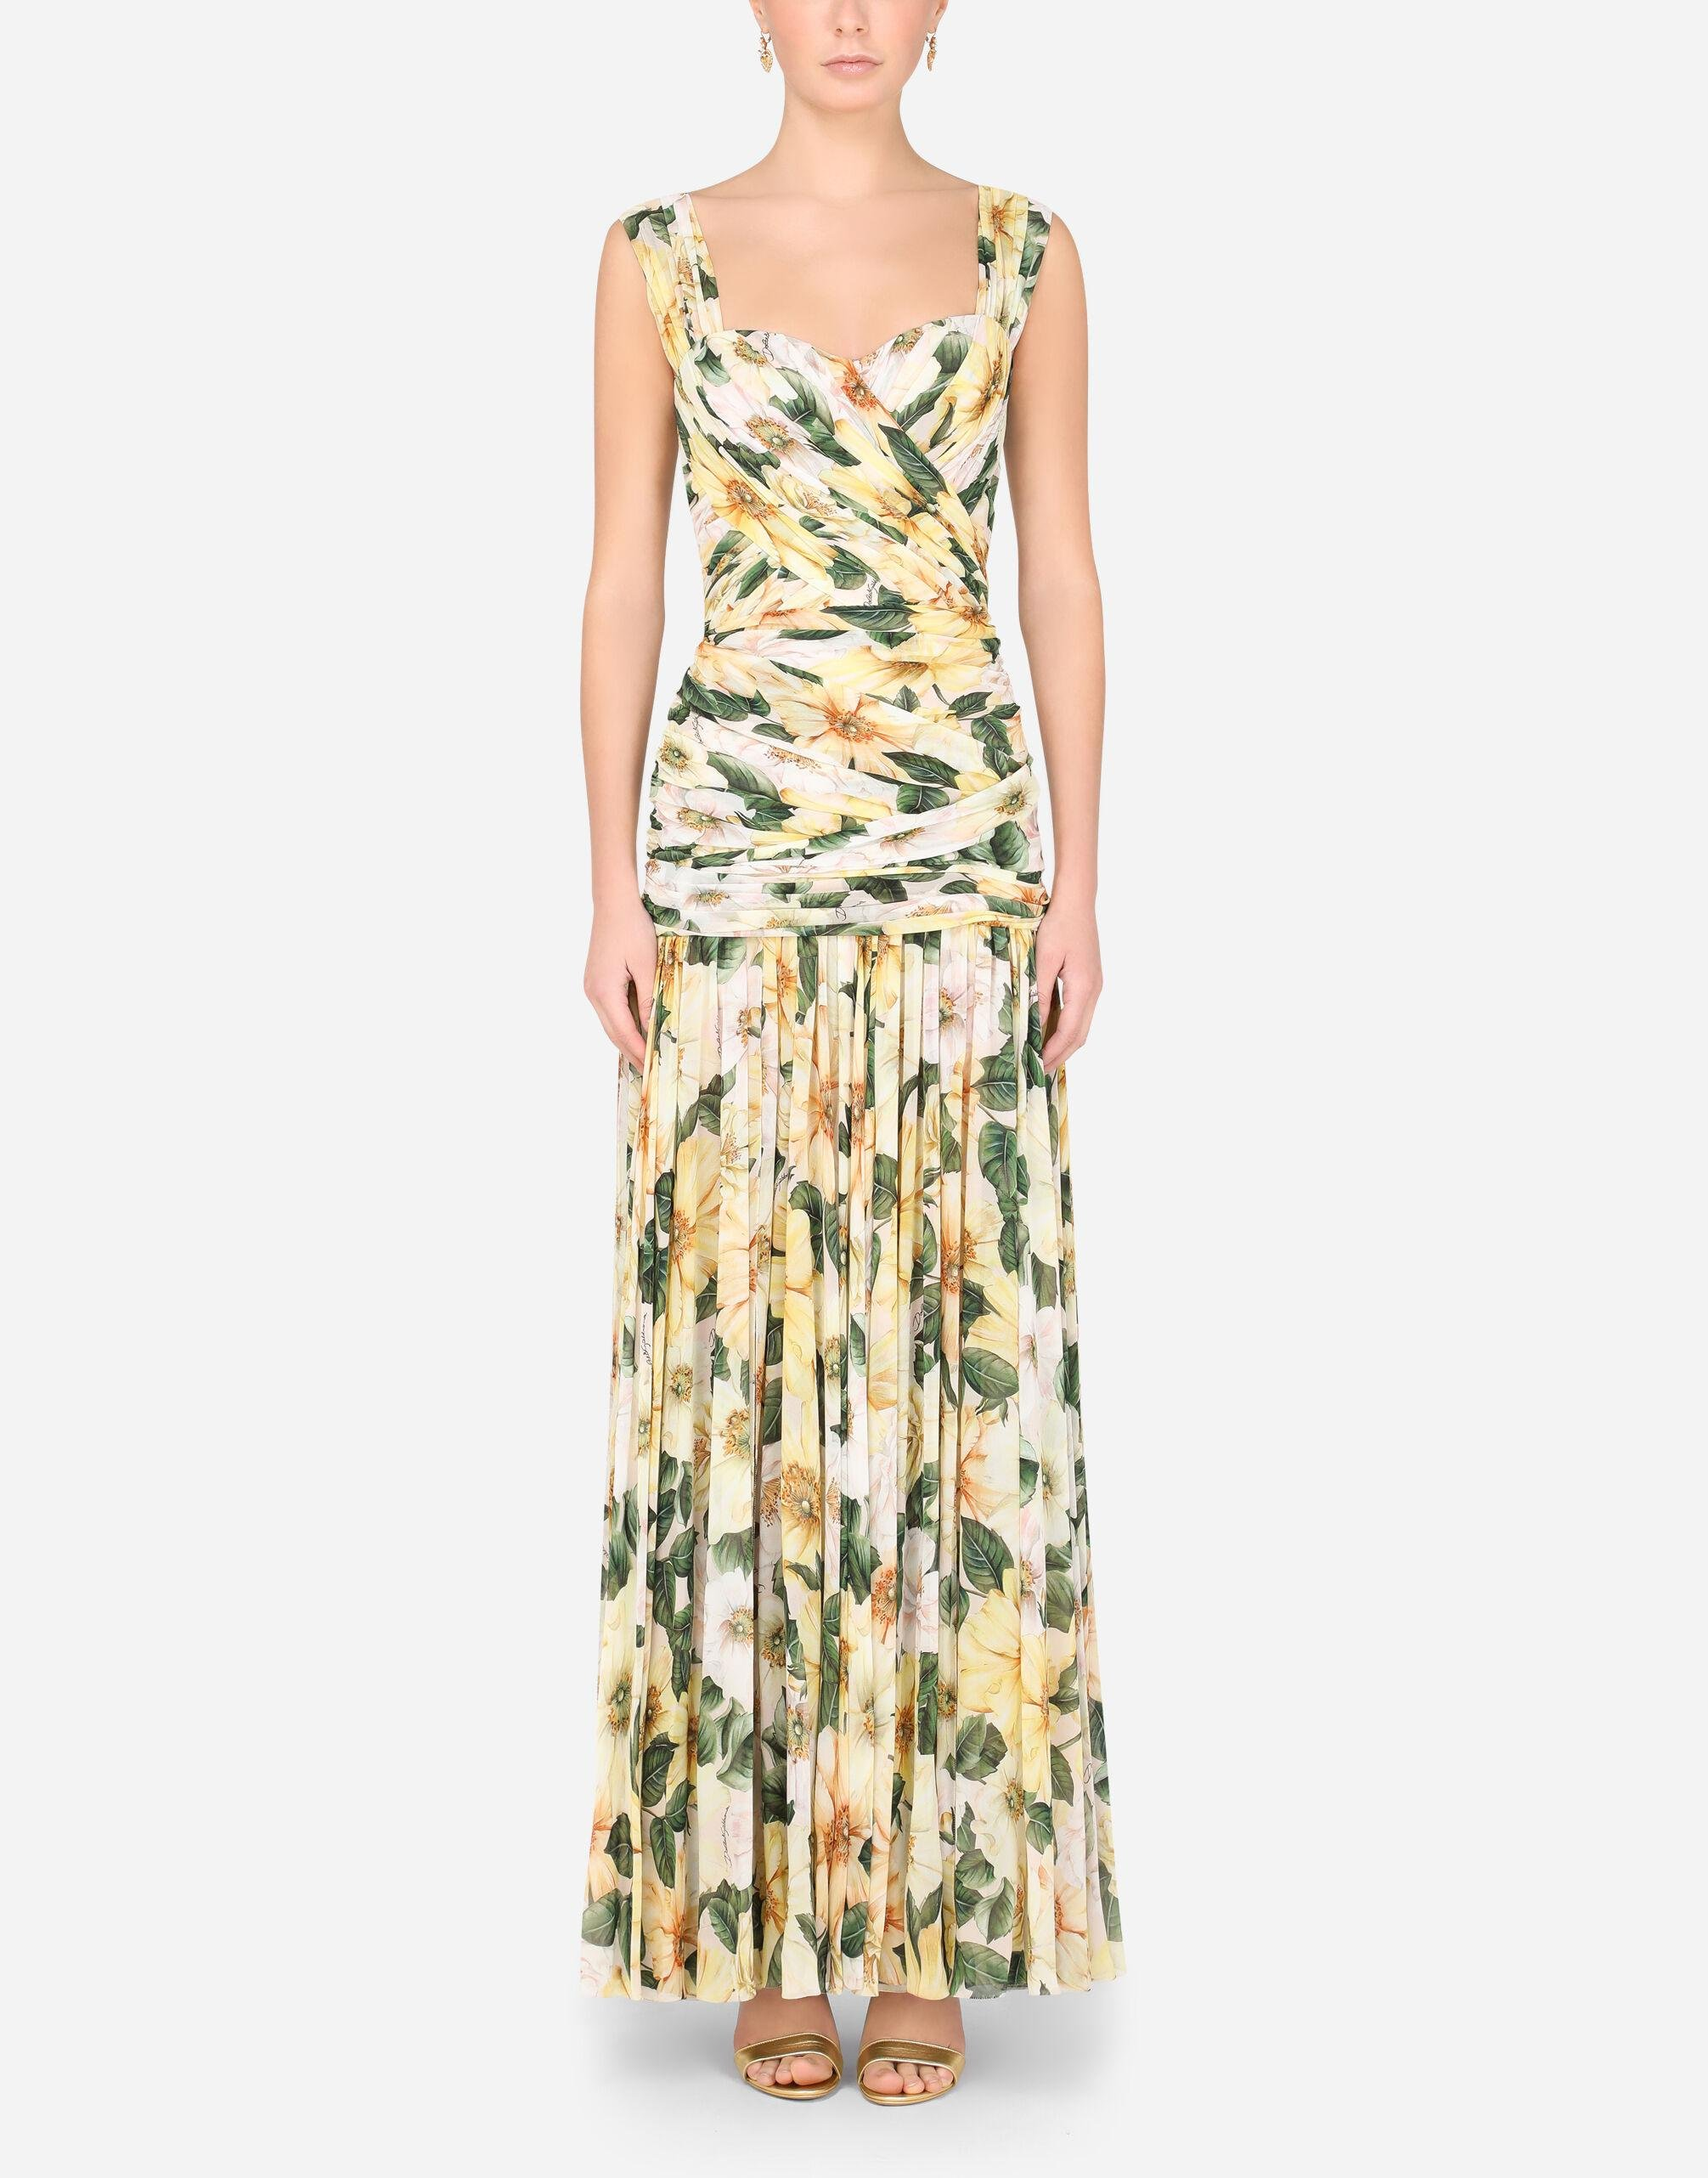 Long camellia-print georgette dress with draping